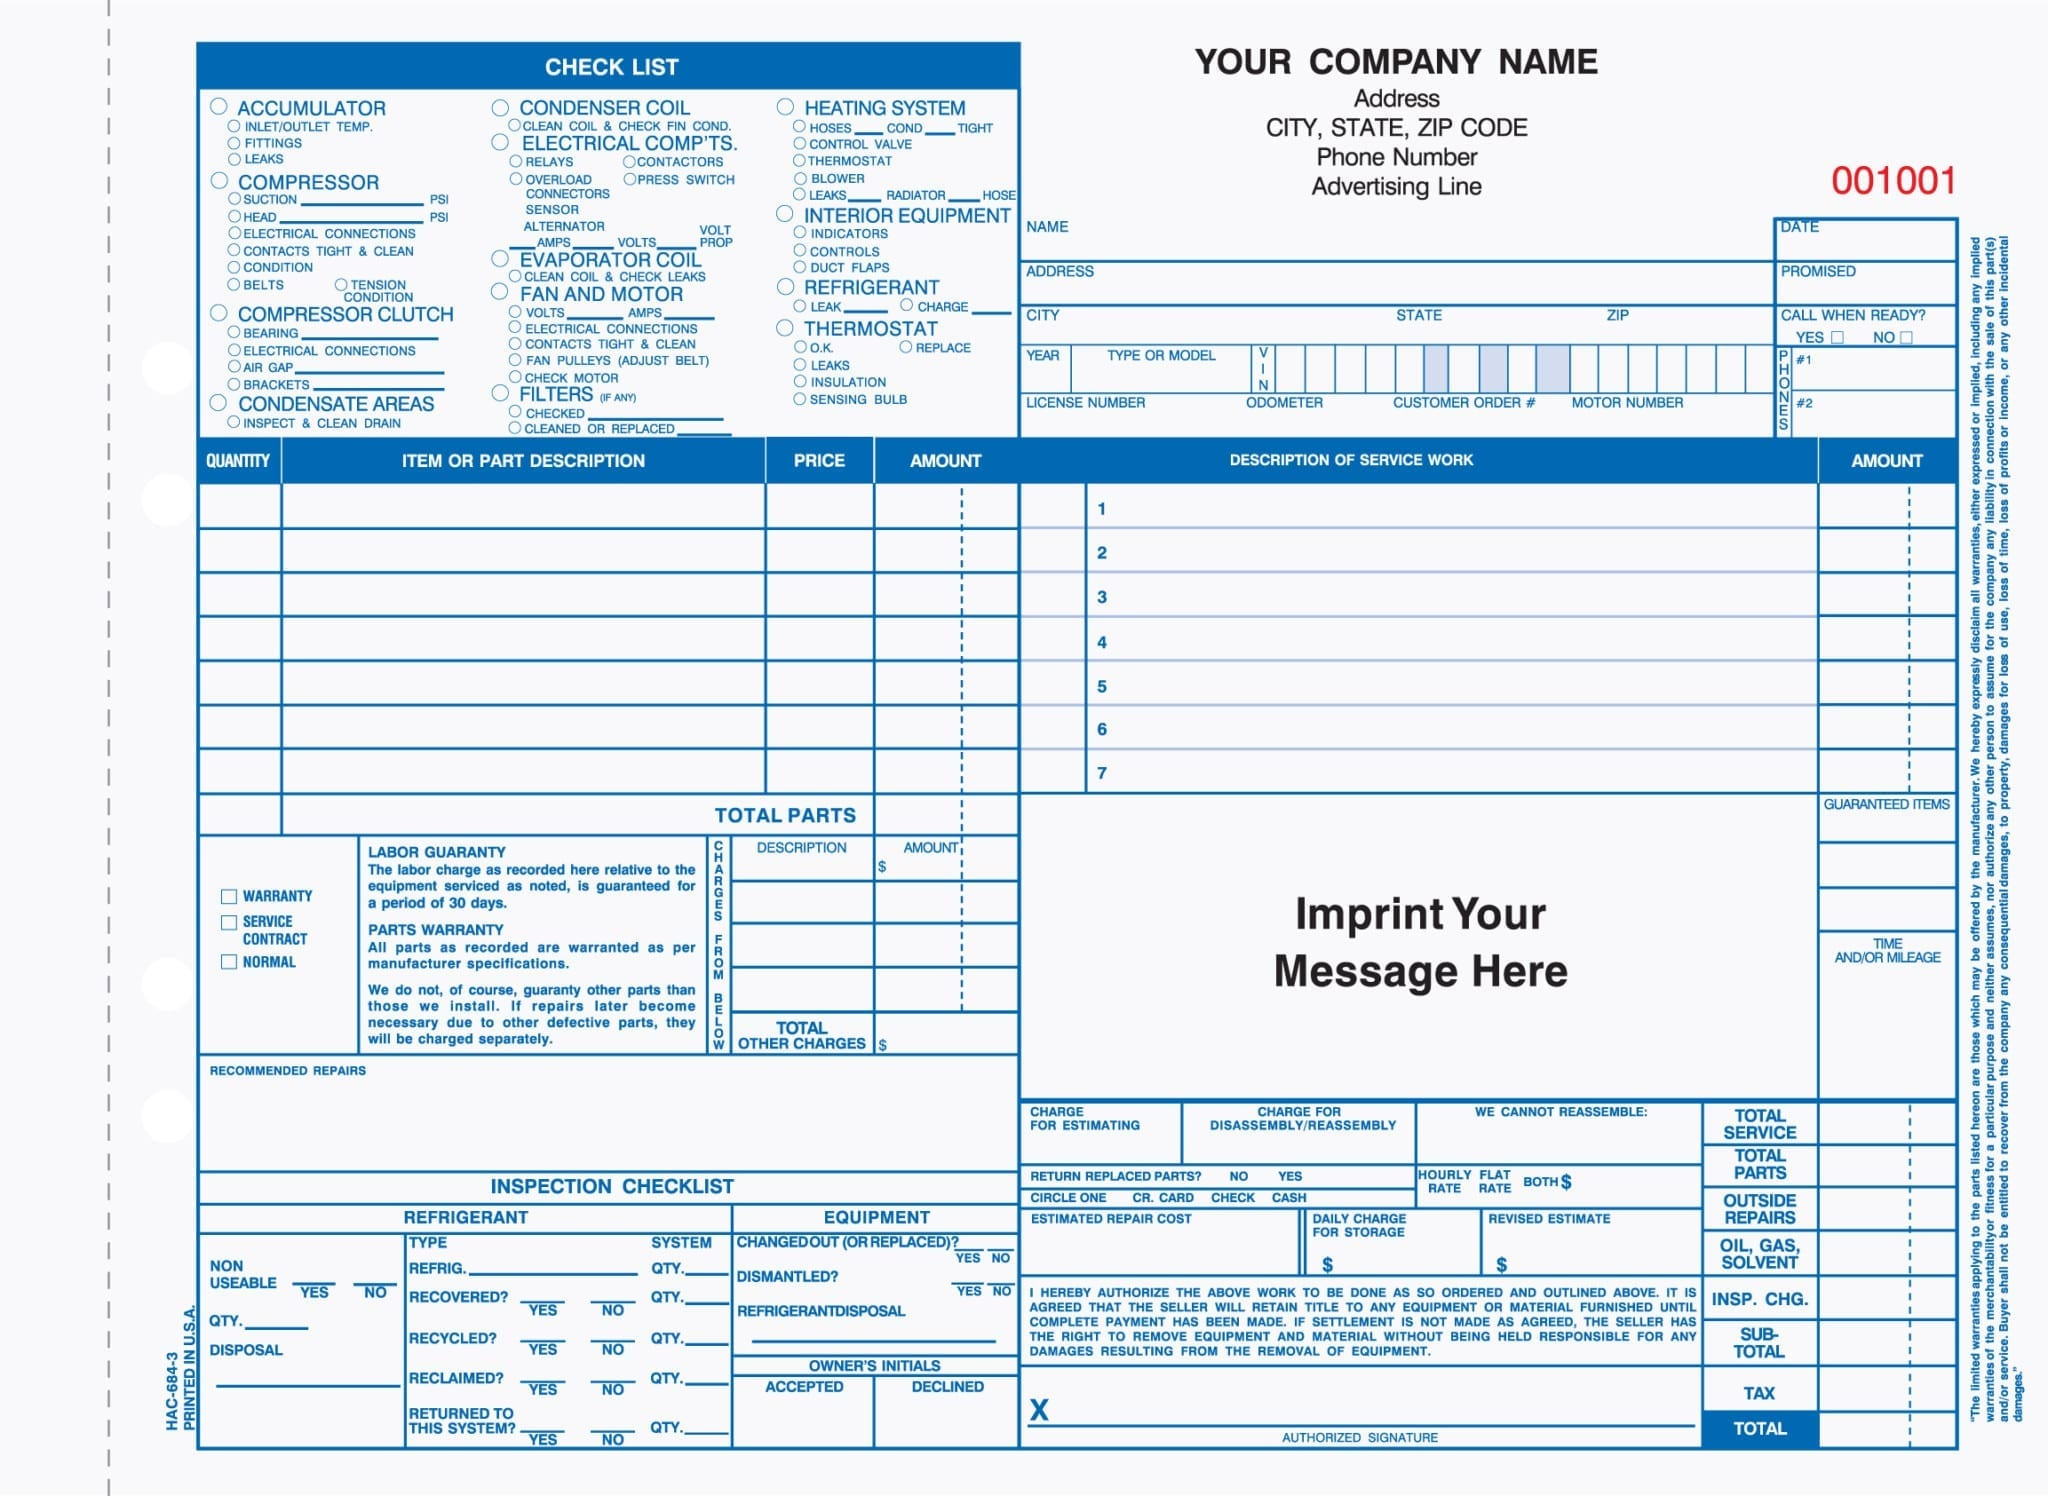 Part Auto Heating Air Cond Work Order Invoice Forms FREE SHIPPING - Work order invoice template free